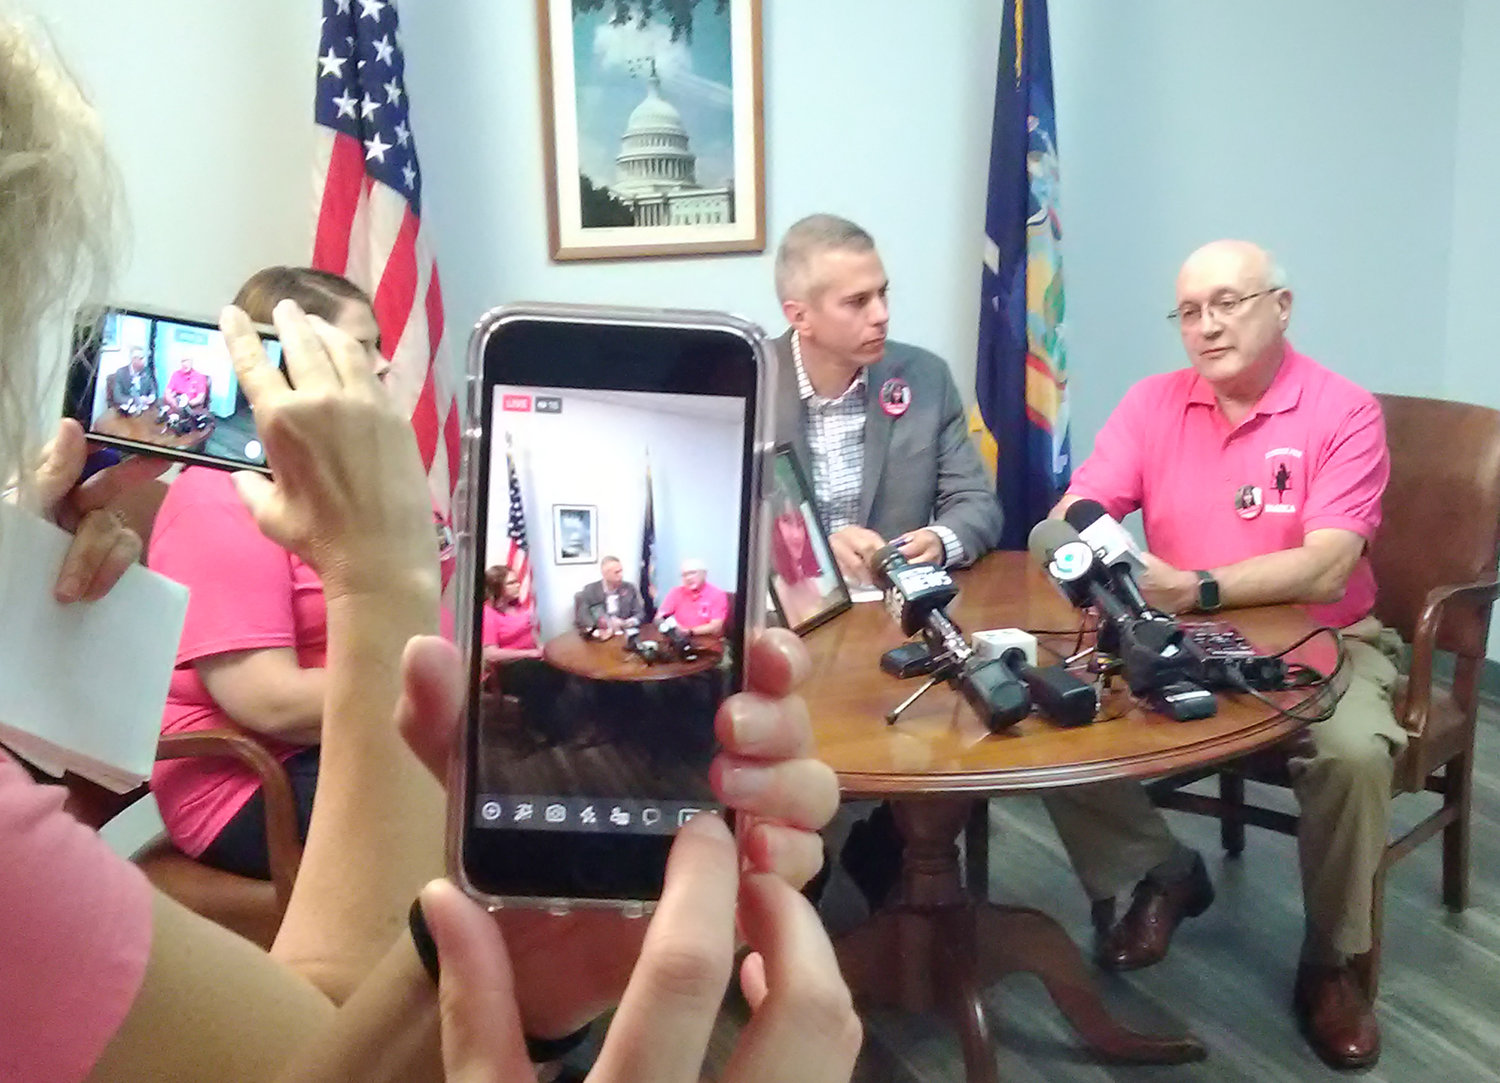 SEEKING SOCIAL-MEDIA ACCOUNTABILITY — Frank Williams, right, speaks to reporters Wednesday at the Utica district office of Congressman Anthony Brindisi, D-22nd Dist., center, about how to keep graphic and  disturbing content off social media platforms. At left is Kimberly Devins, Williams' daughter and mother of Bianca Devins, shown in the photo on the table, who was killed July 14 in Utica. Police say her killer took photos of her body then shared them on social media. The Devins family was then subjected to harassment that included some of the images.